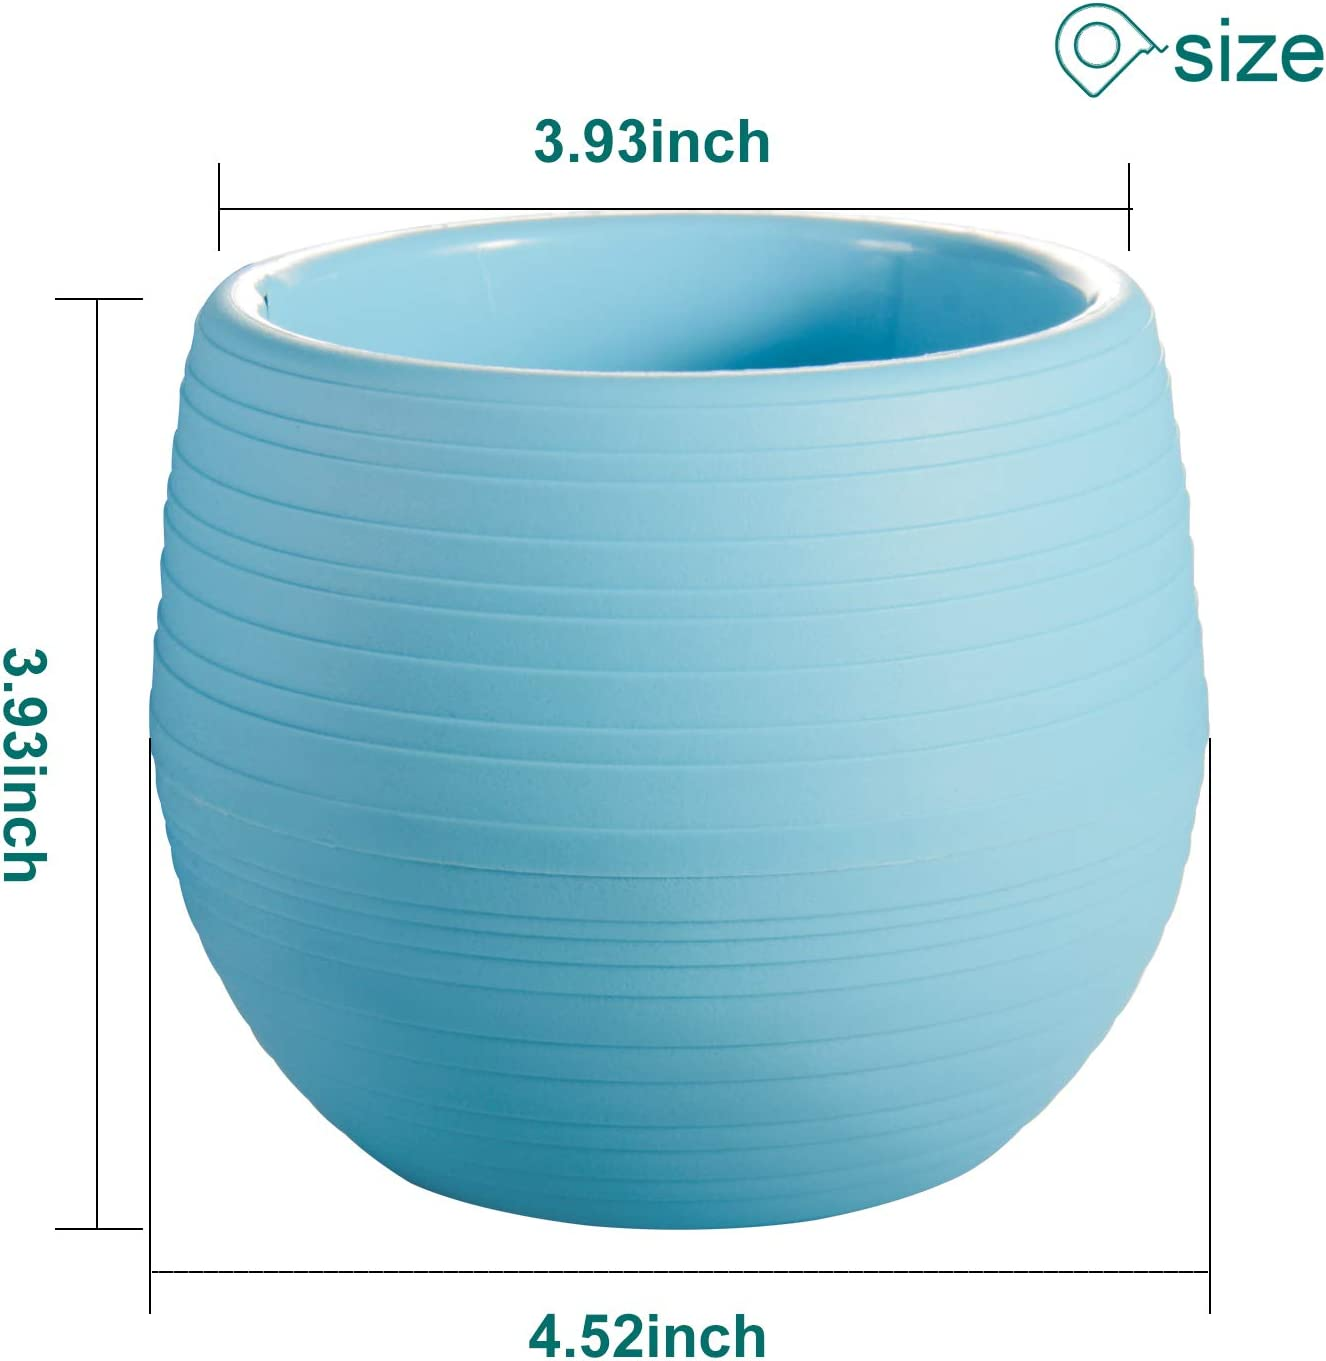 EHWINE 4 Inch Colorful Cute Egg Shape Flower Pots Indoor Plastic Plant Pots 6 Pack Seed Starting Removable Saucer Plant Pot with Drainage Hole for Cactus Succulent